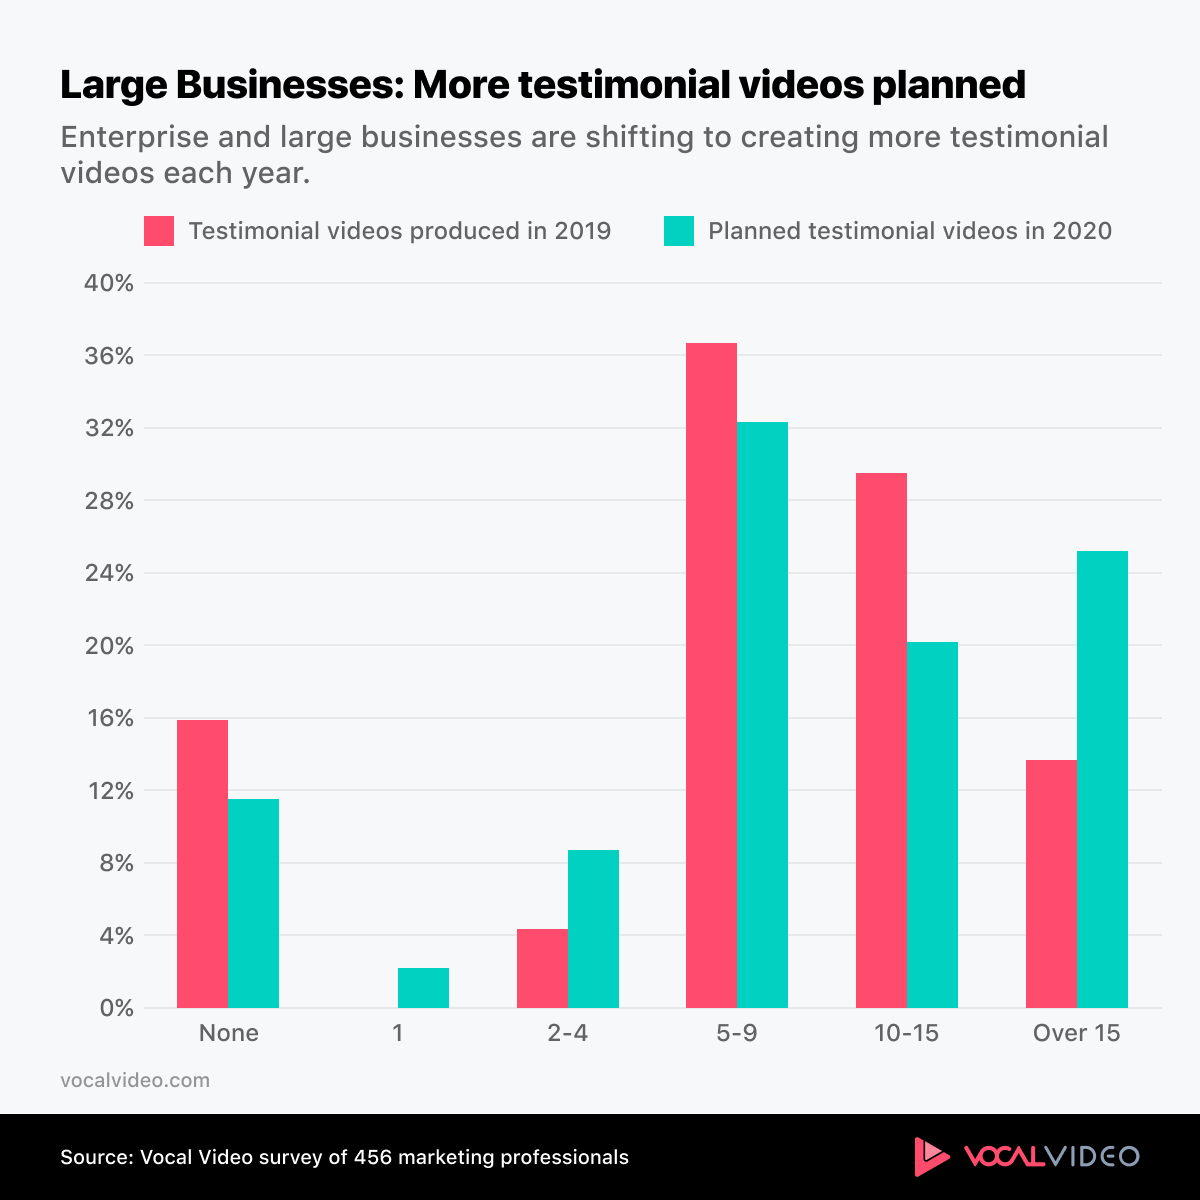 Chart showing that large organizations plan to produce more testimonial videos in the coming year.